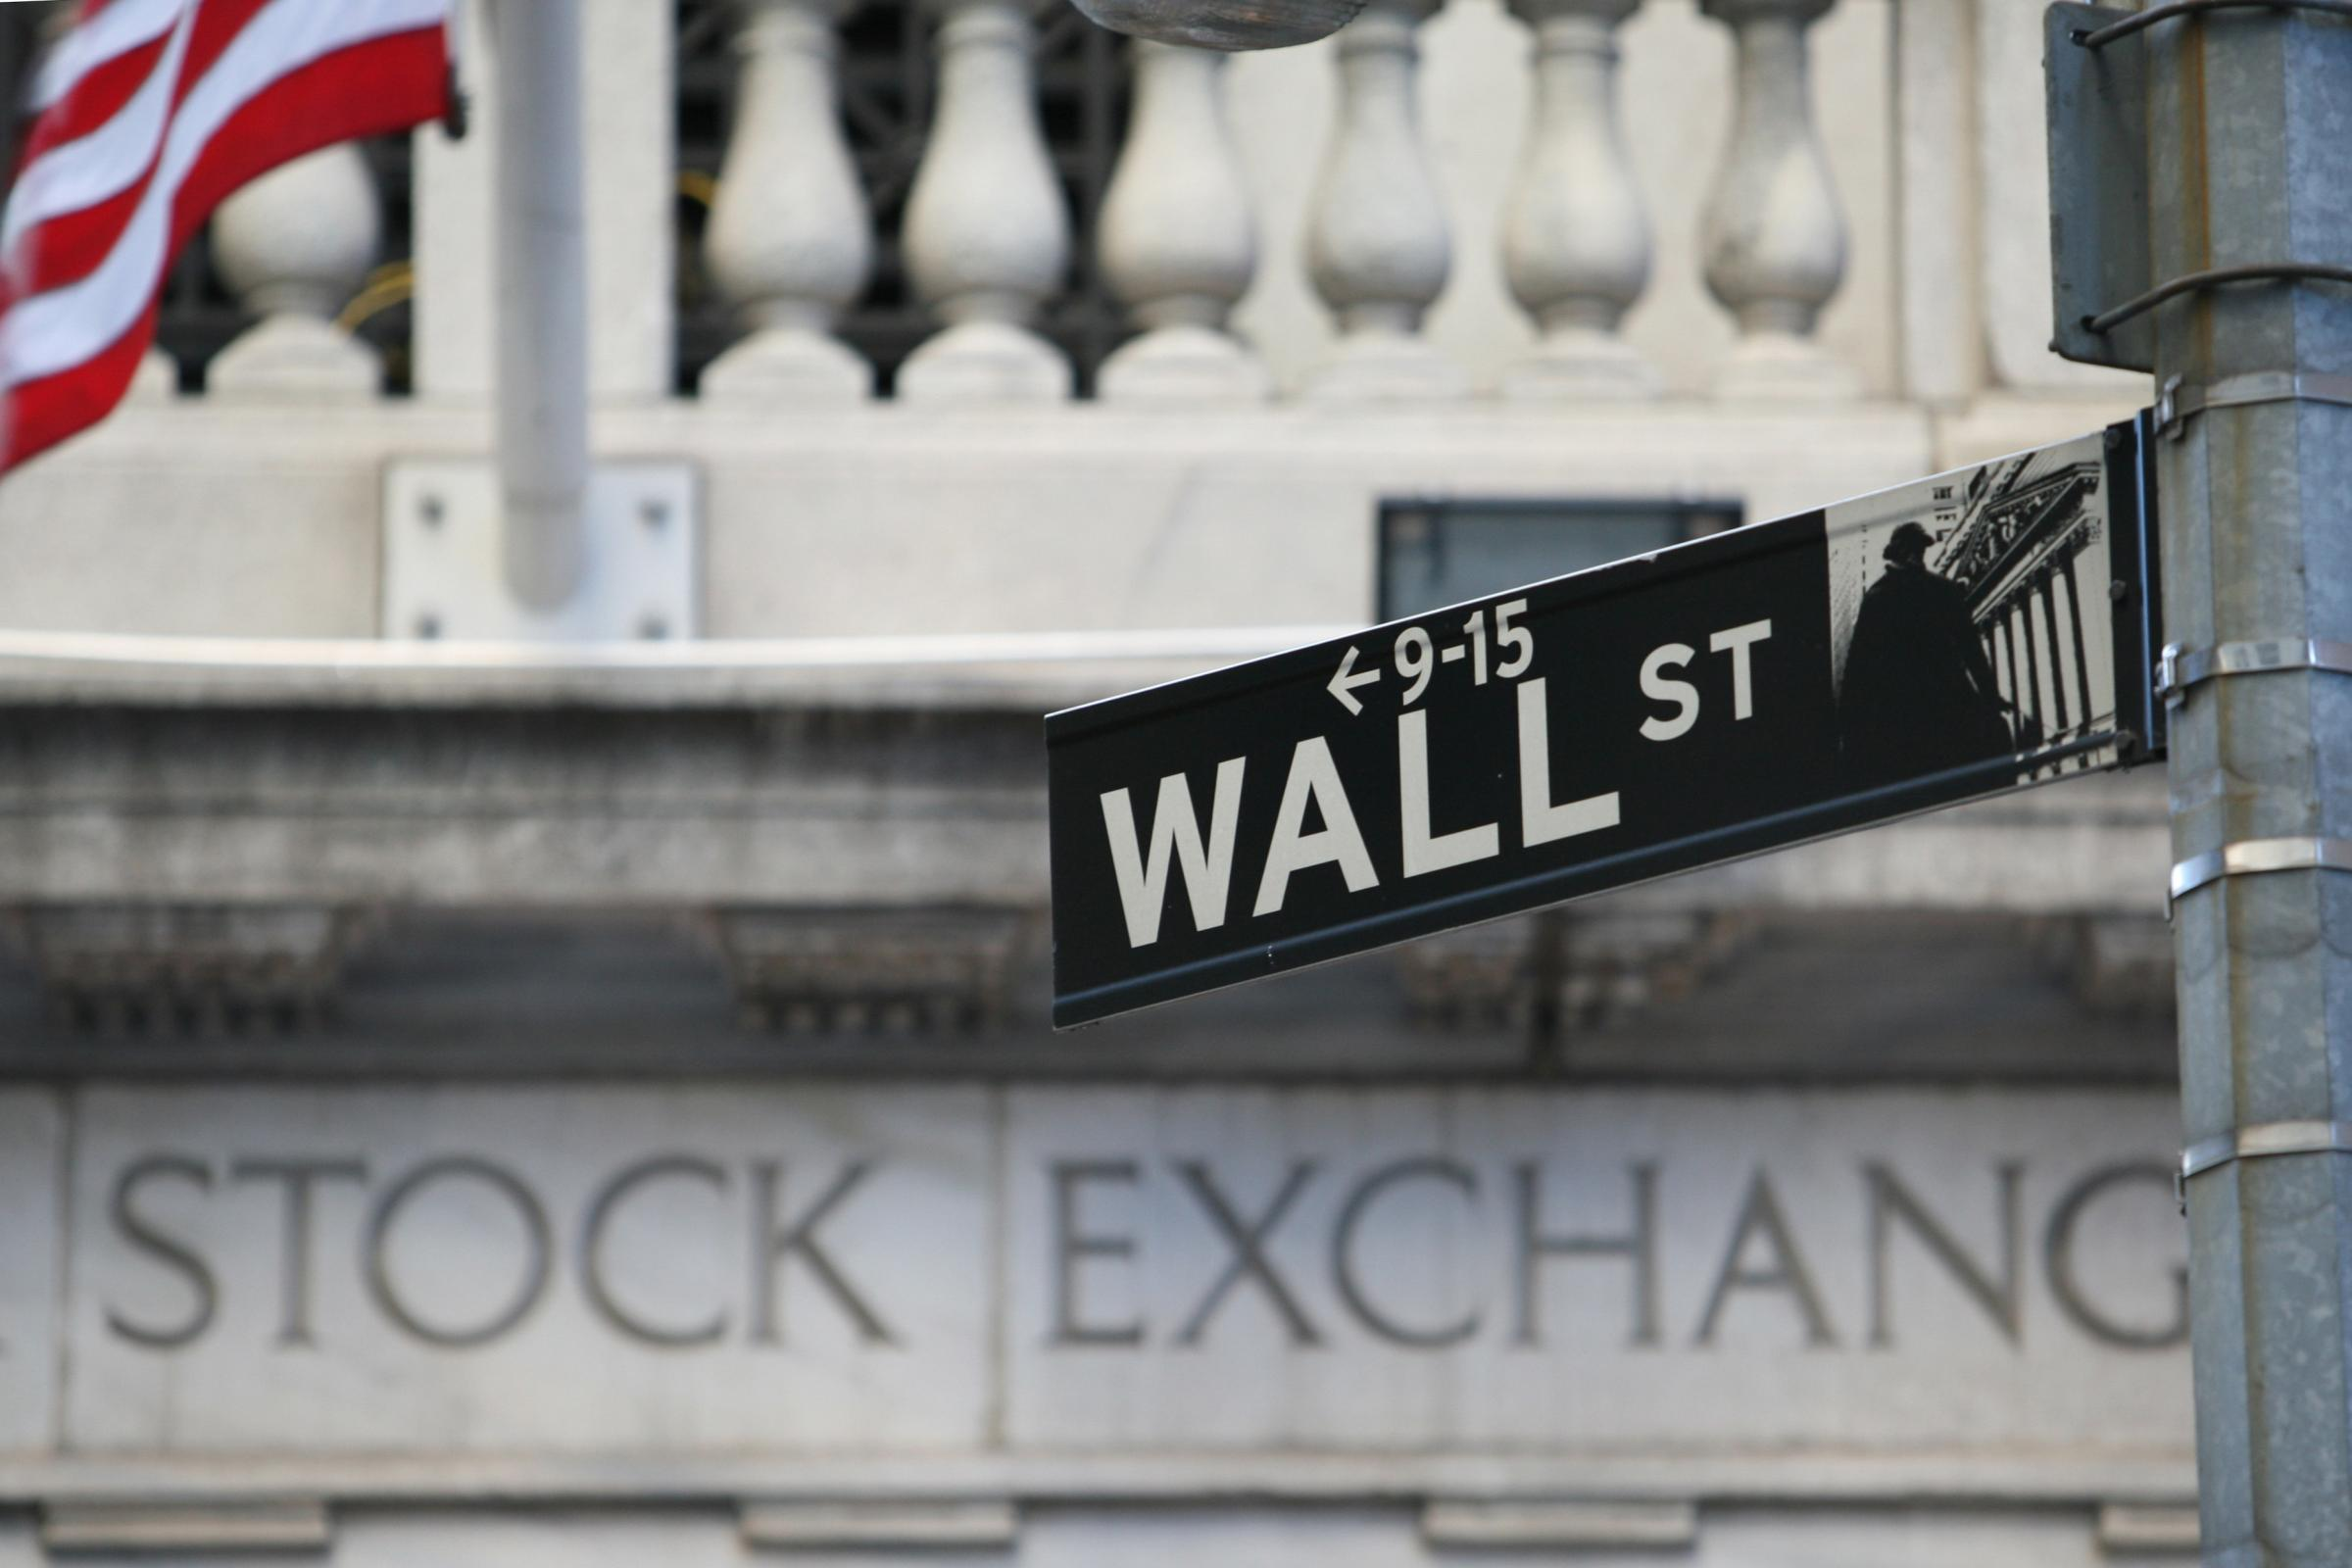 Respite for Wall Street after red October for traders